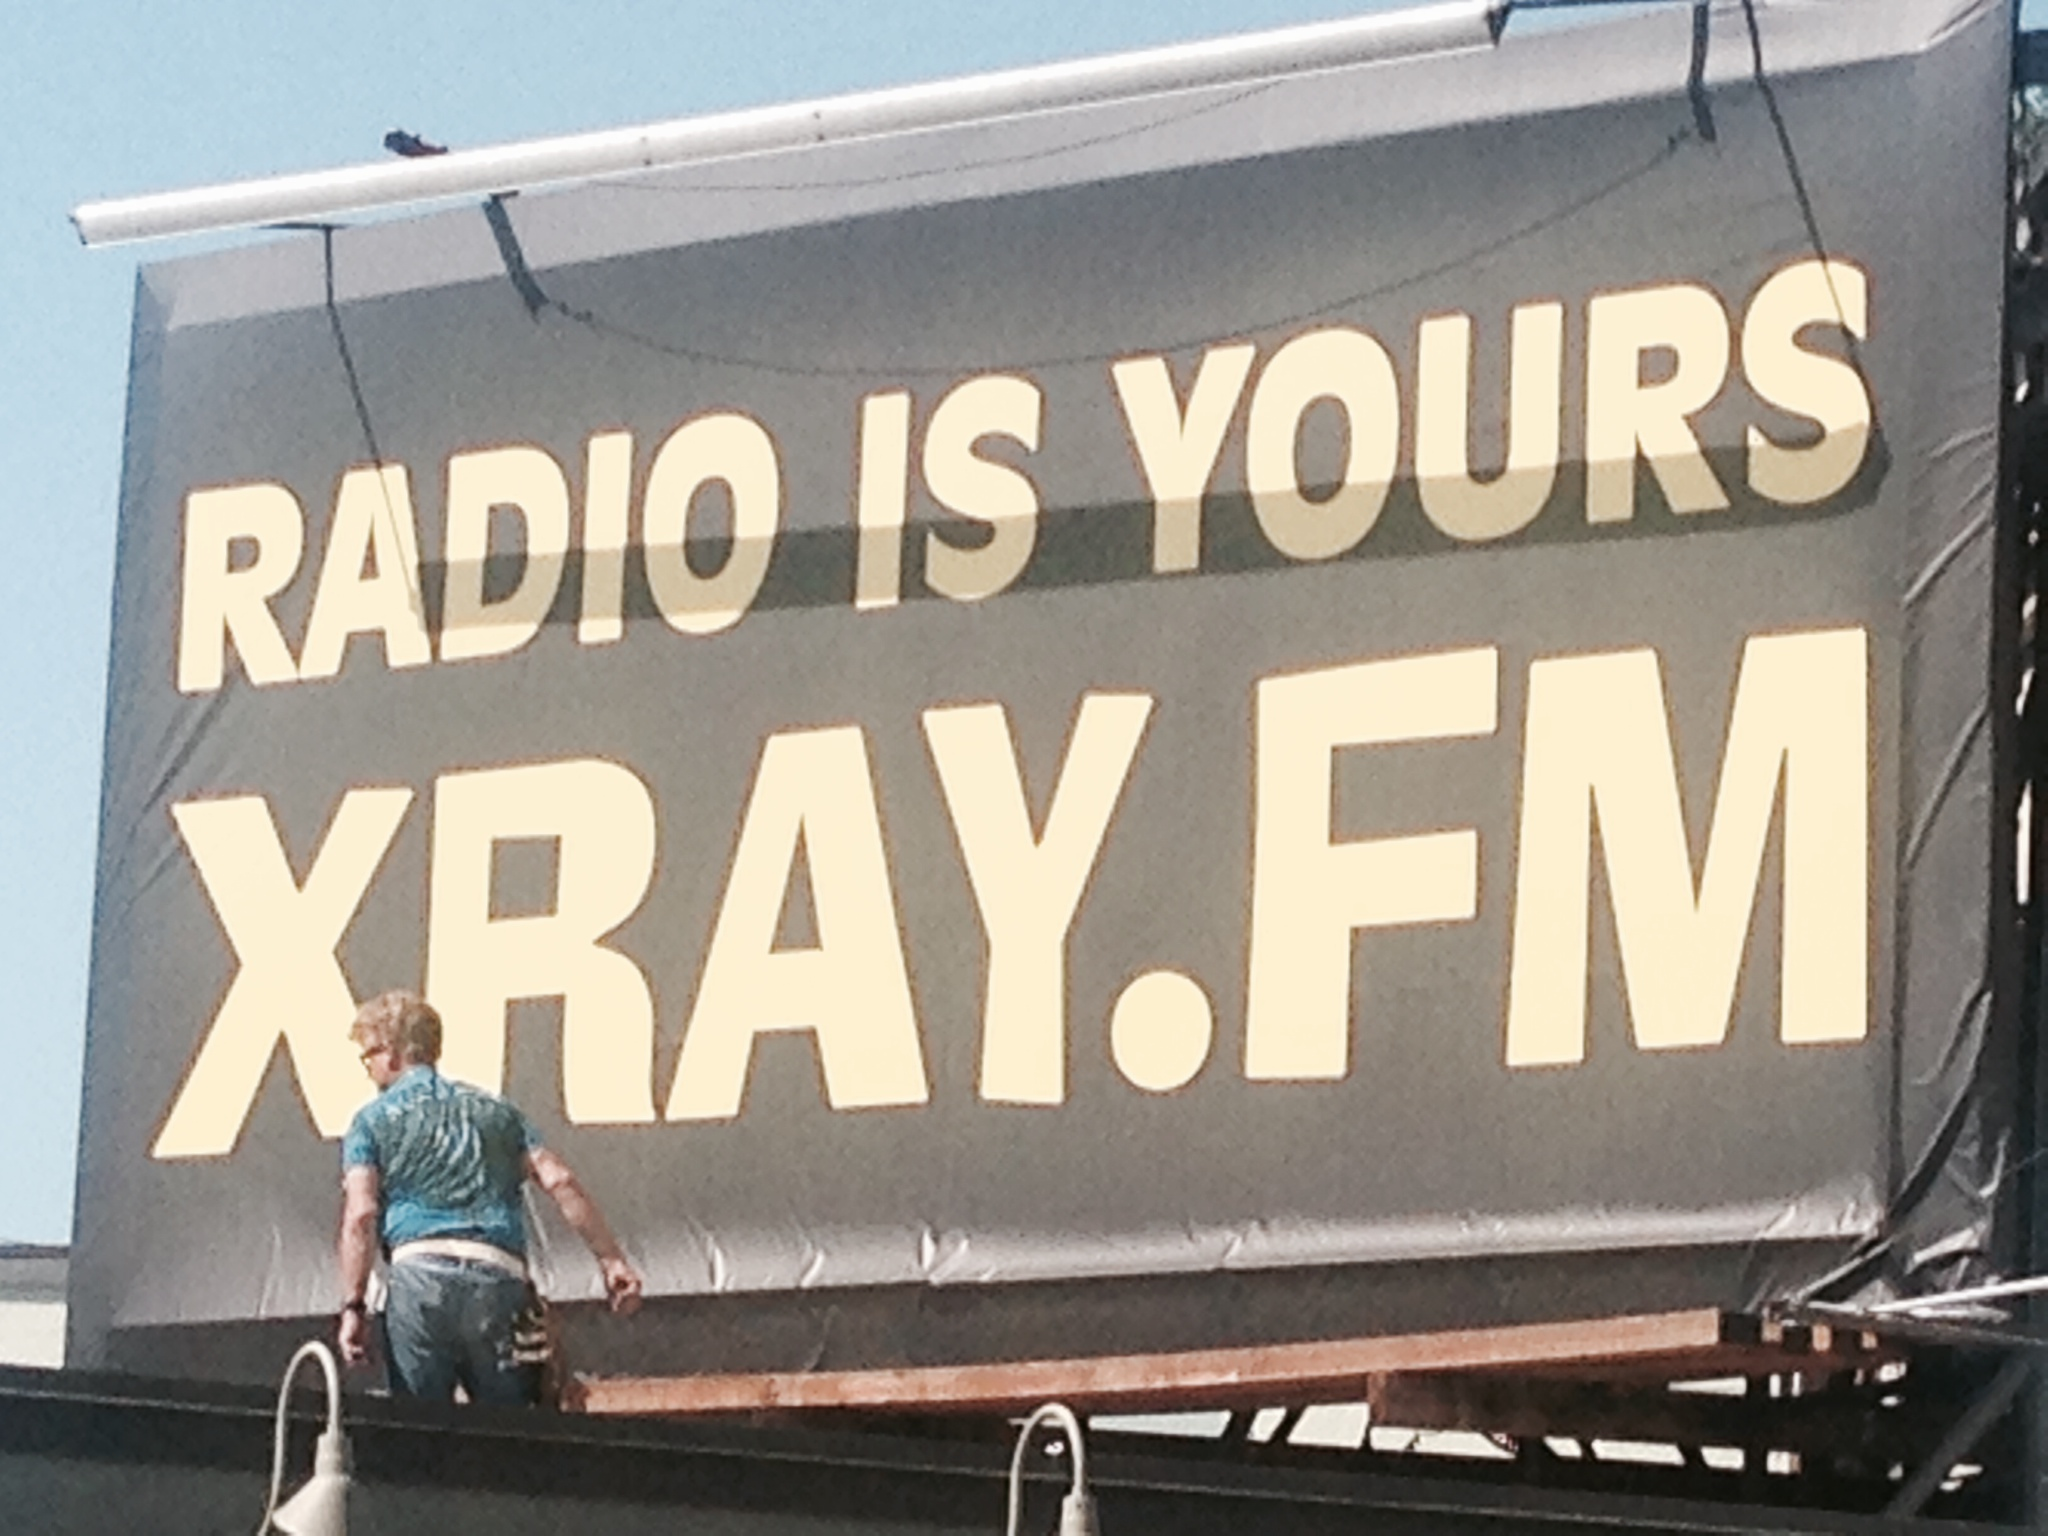 About /// XRAY.fm